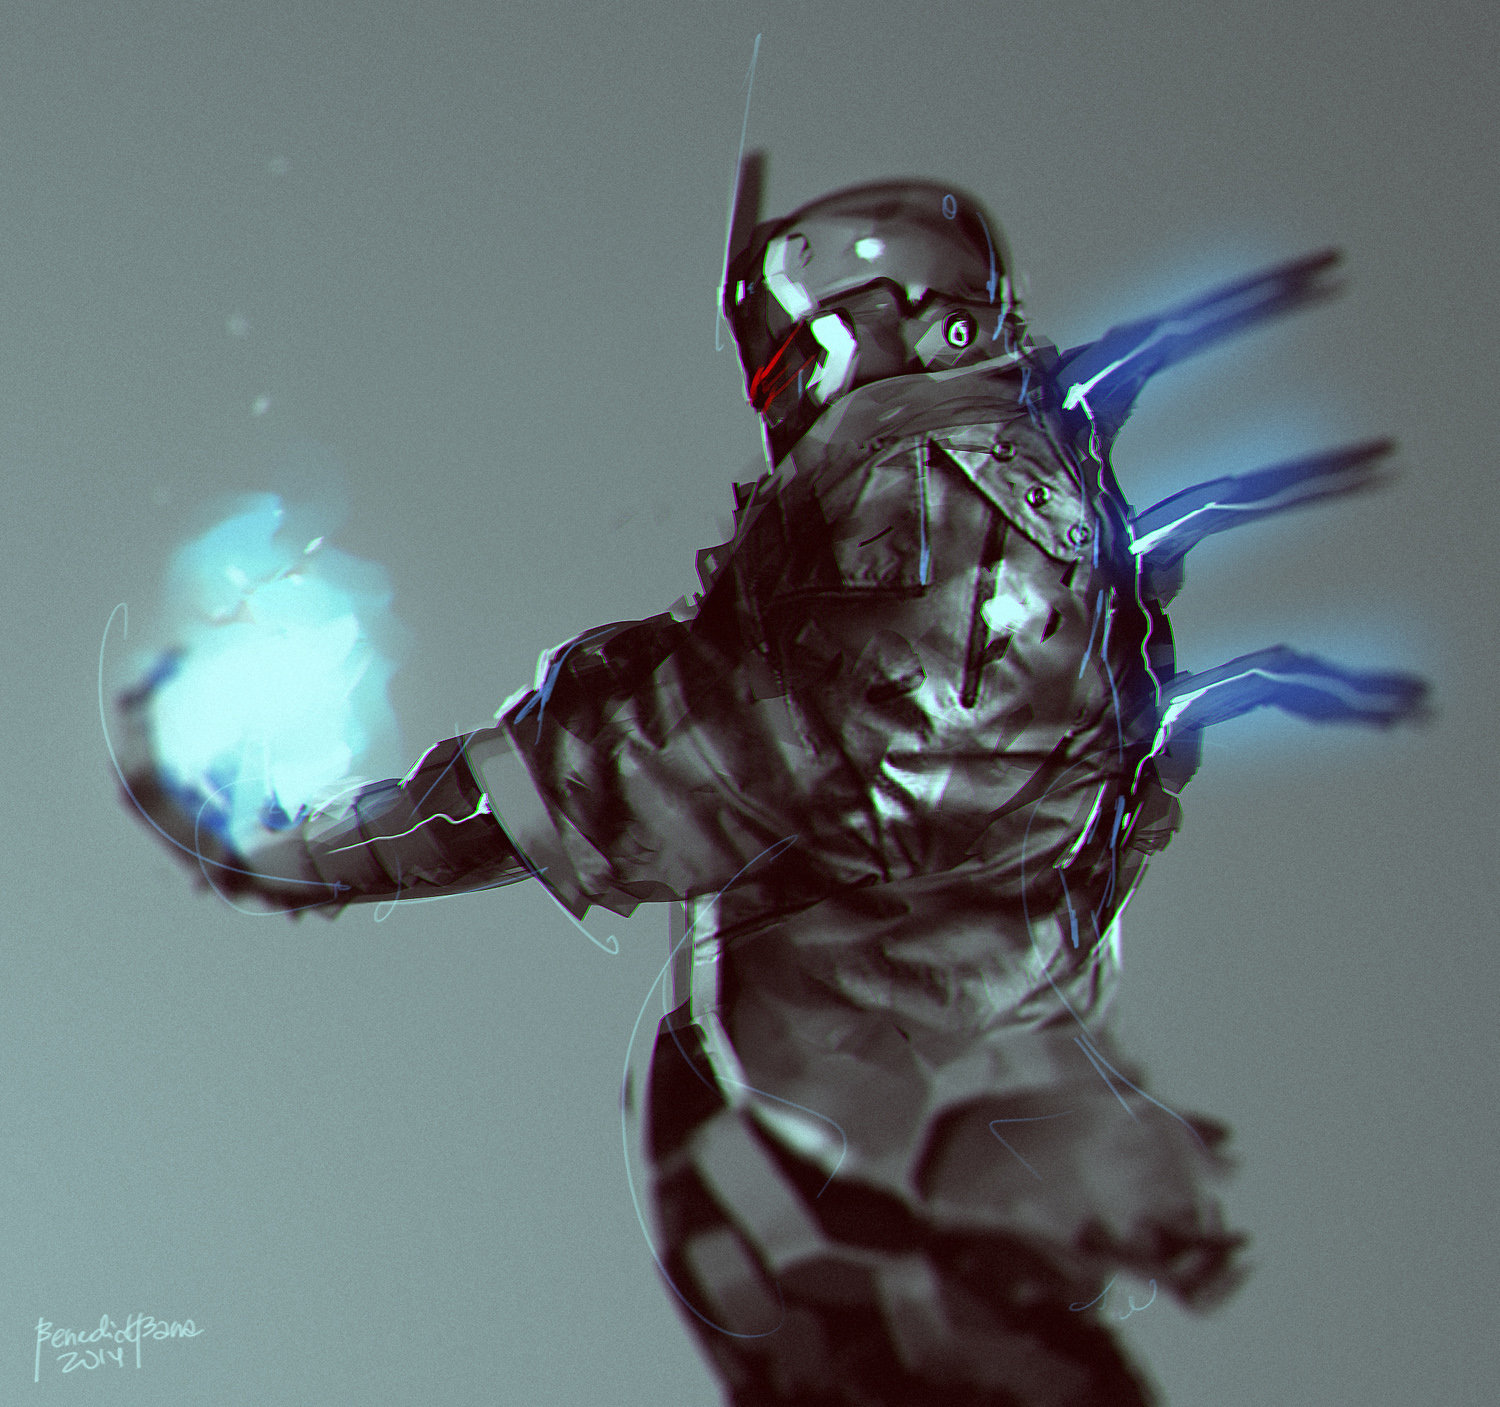 Benedick bana power jacket lores